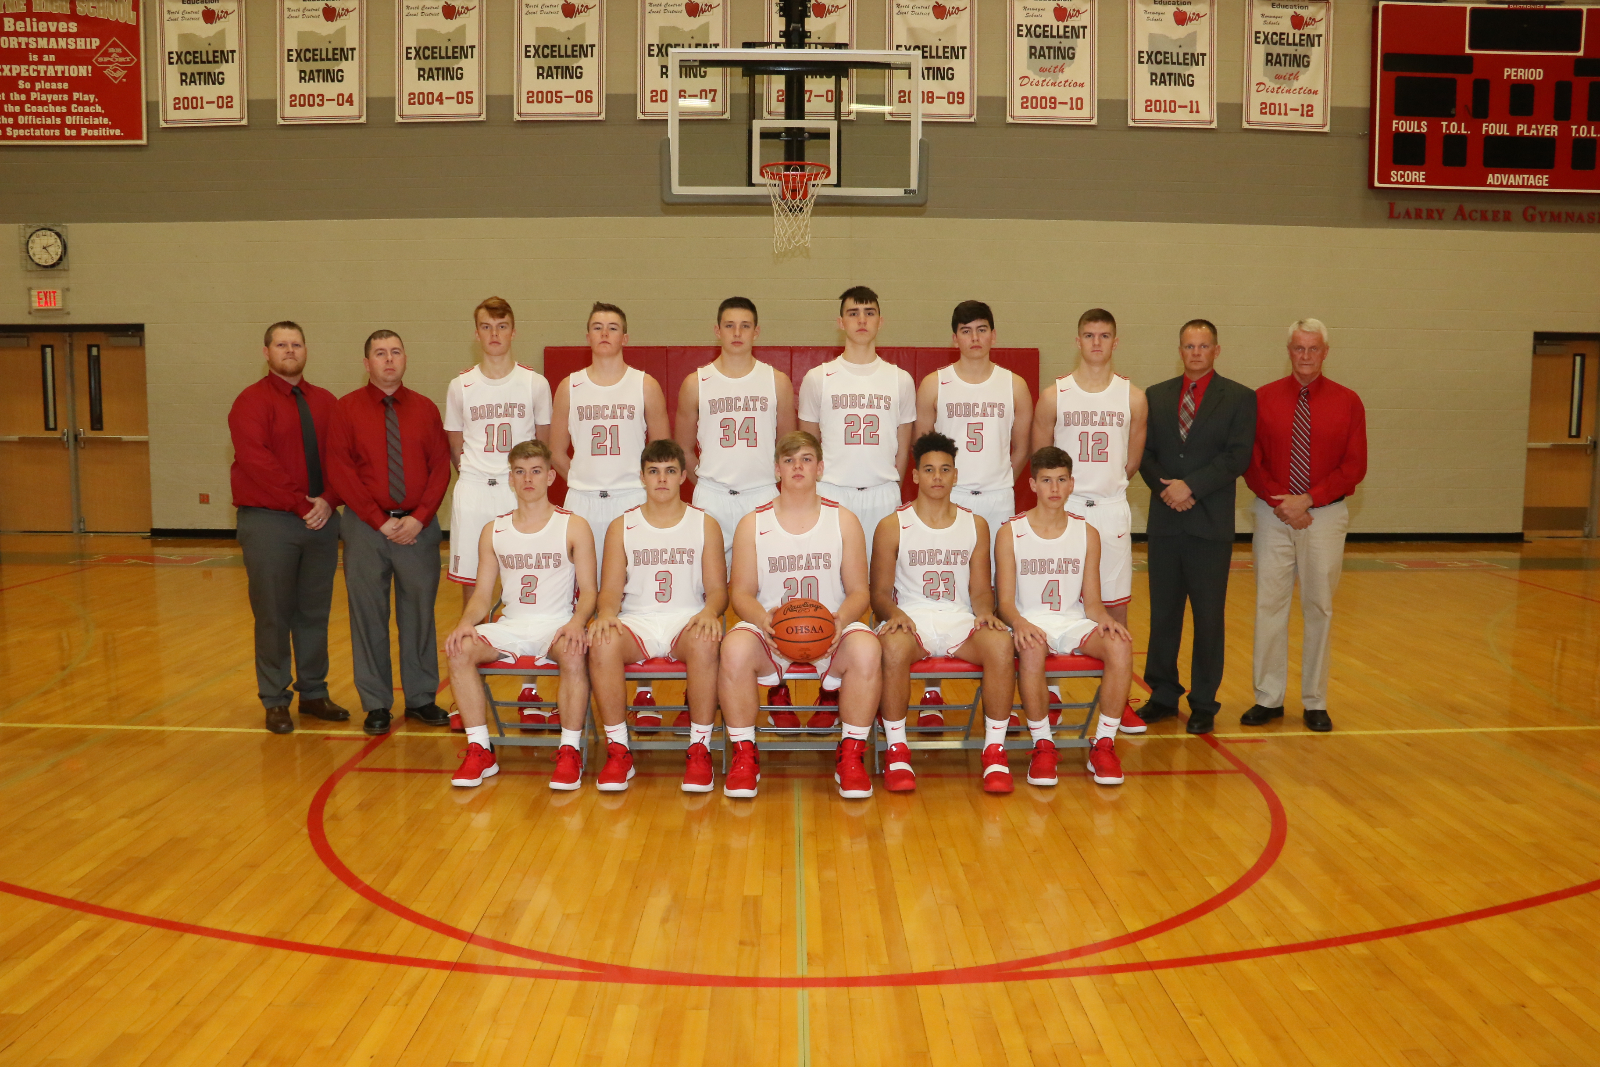 Norwayne Boys Basketball Wins Sectional Title Over Chippewa 39-38